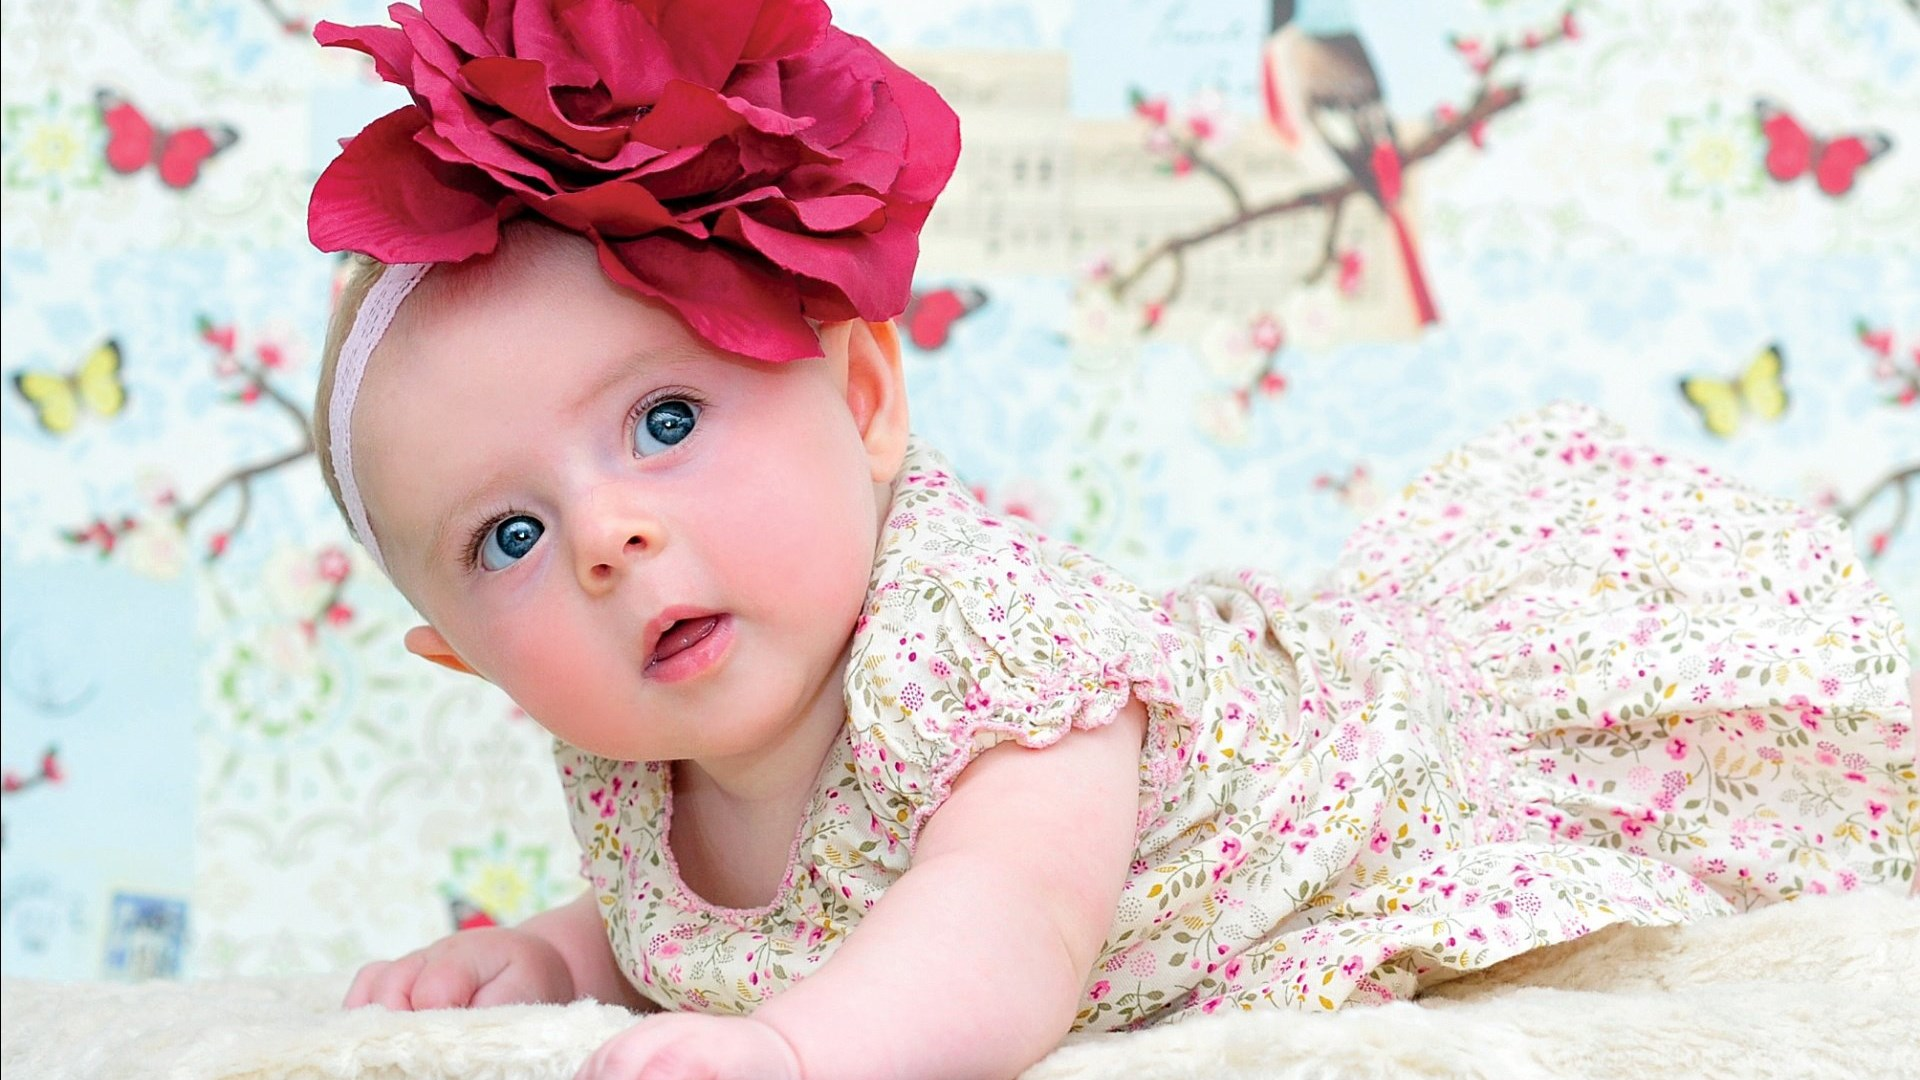 cute baby wallpaper for iphone 6 plus